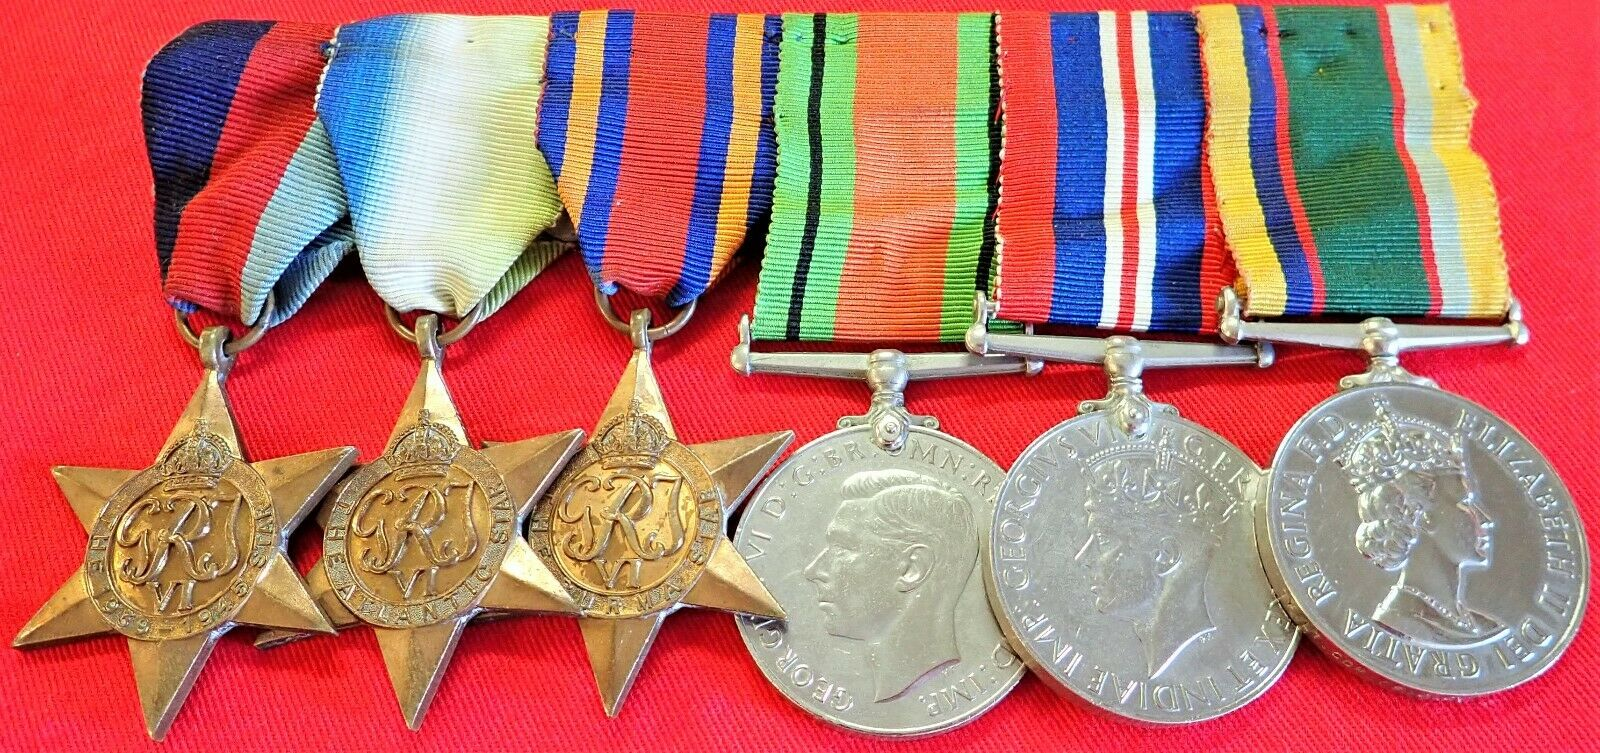 WW2 & NAVAL CADET CORPS MEDAL GROUP OF 6 TO TEMP LT COMMANDER SISSONS RNR